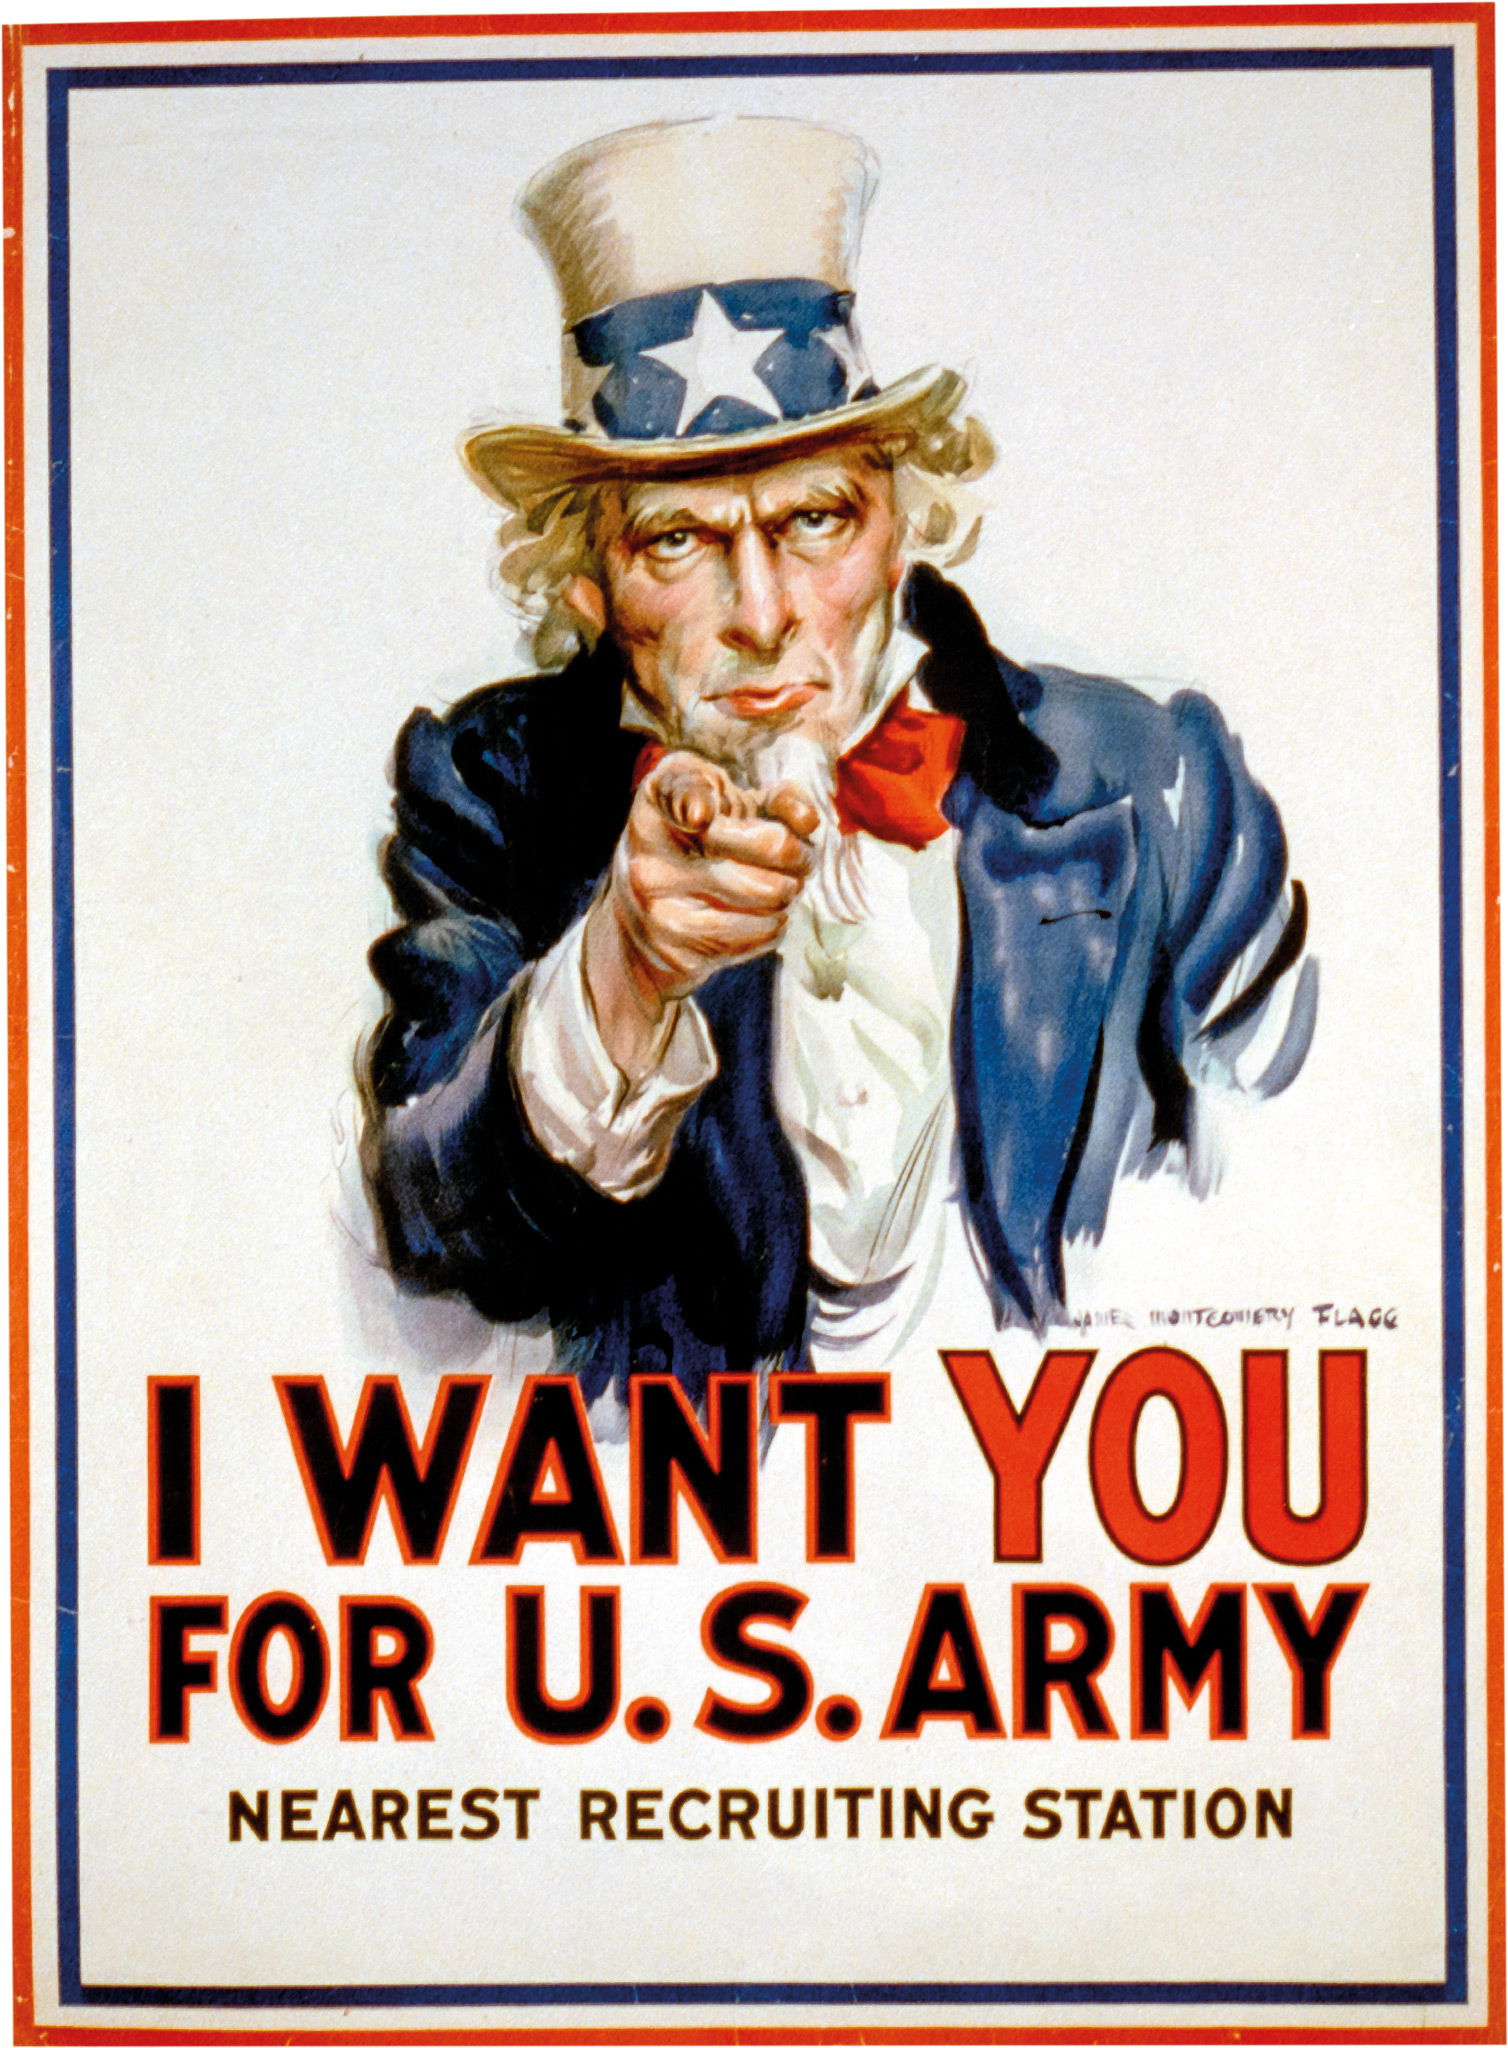 The famous 'I Want You' recruitment poster encouraged Americans to join the effort